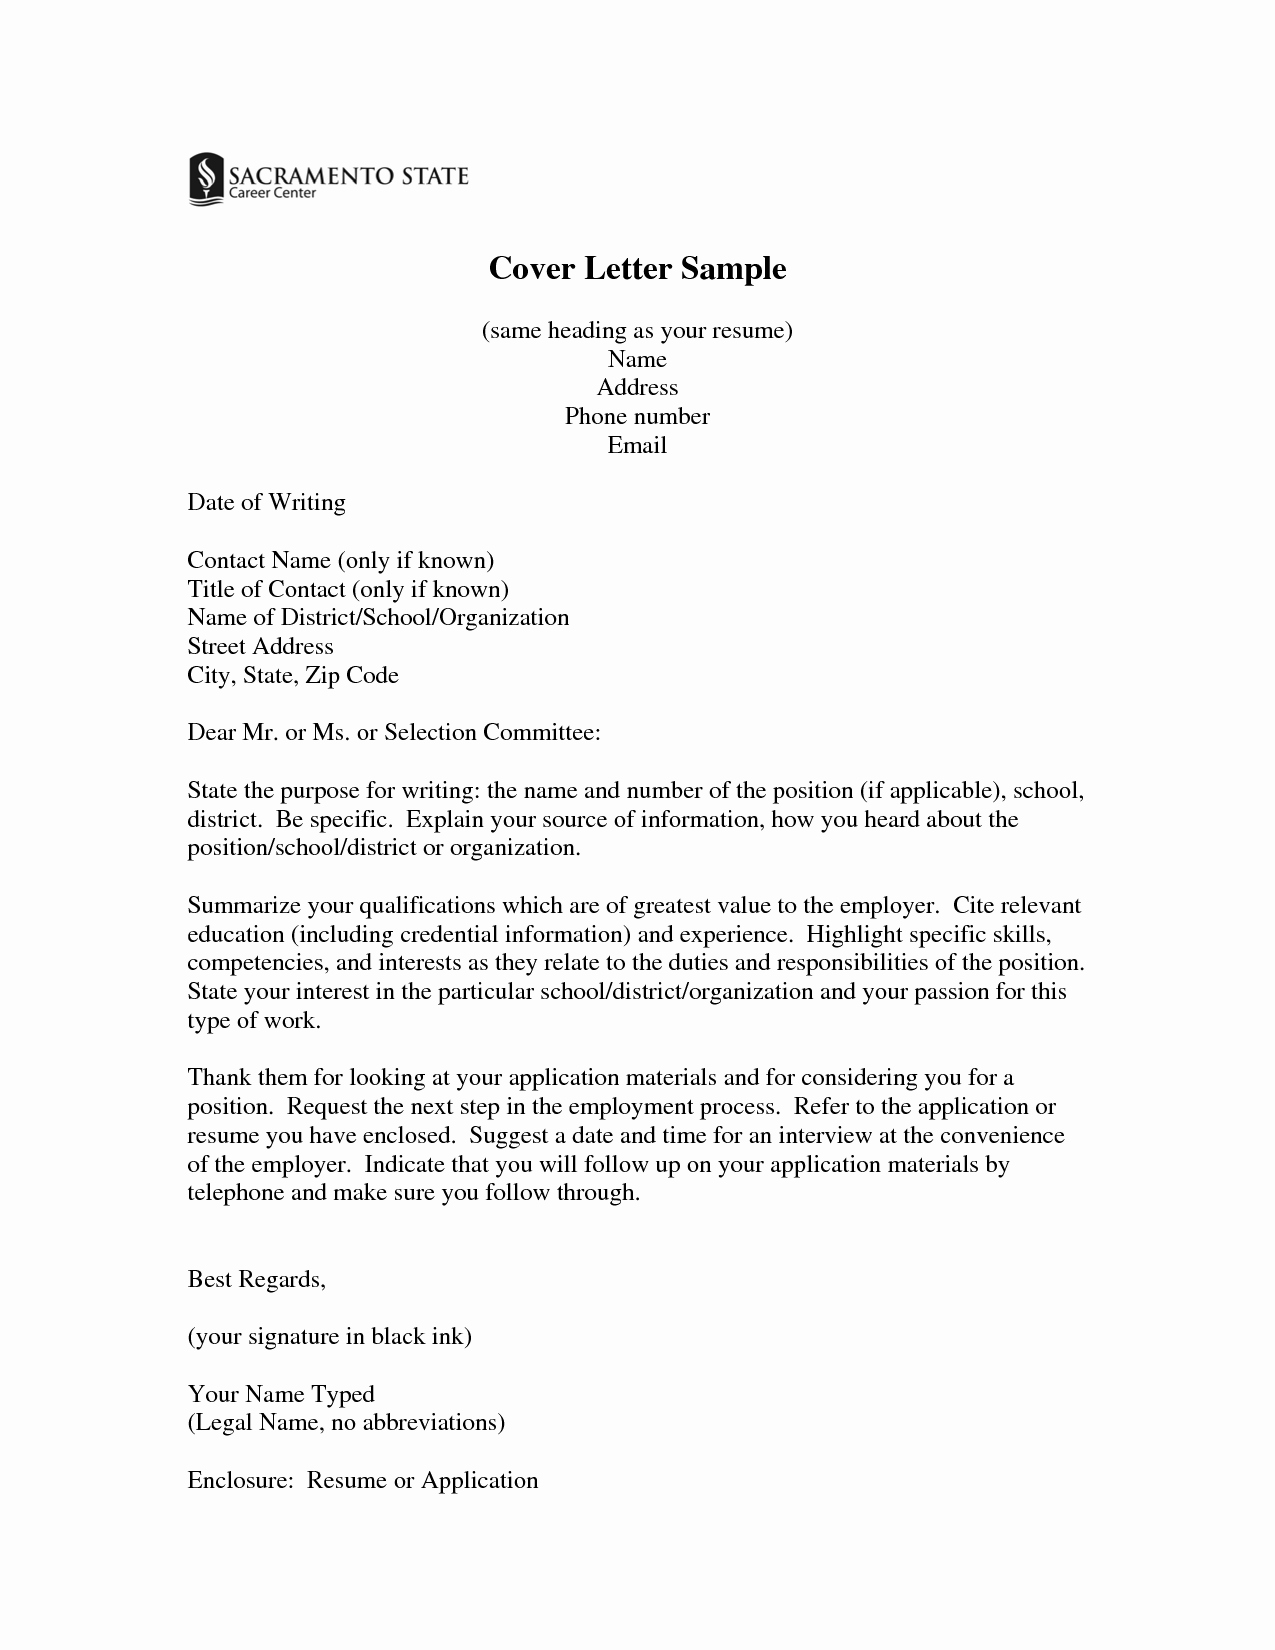 Letter Of Recommendation Signature Fresh Same Cover Letters for Resume